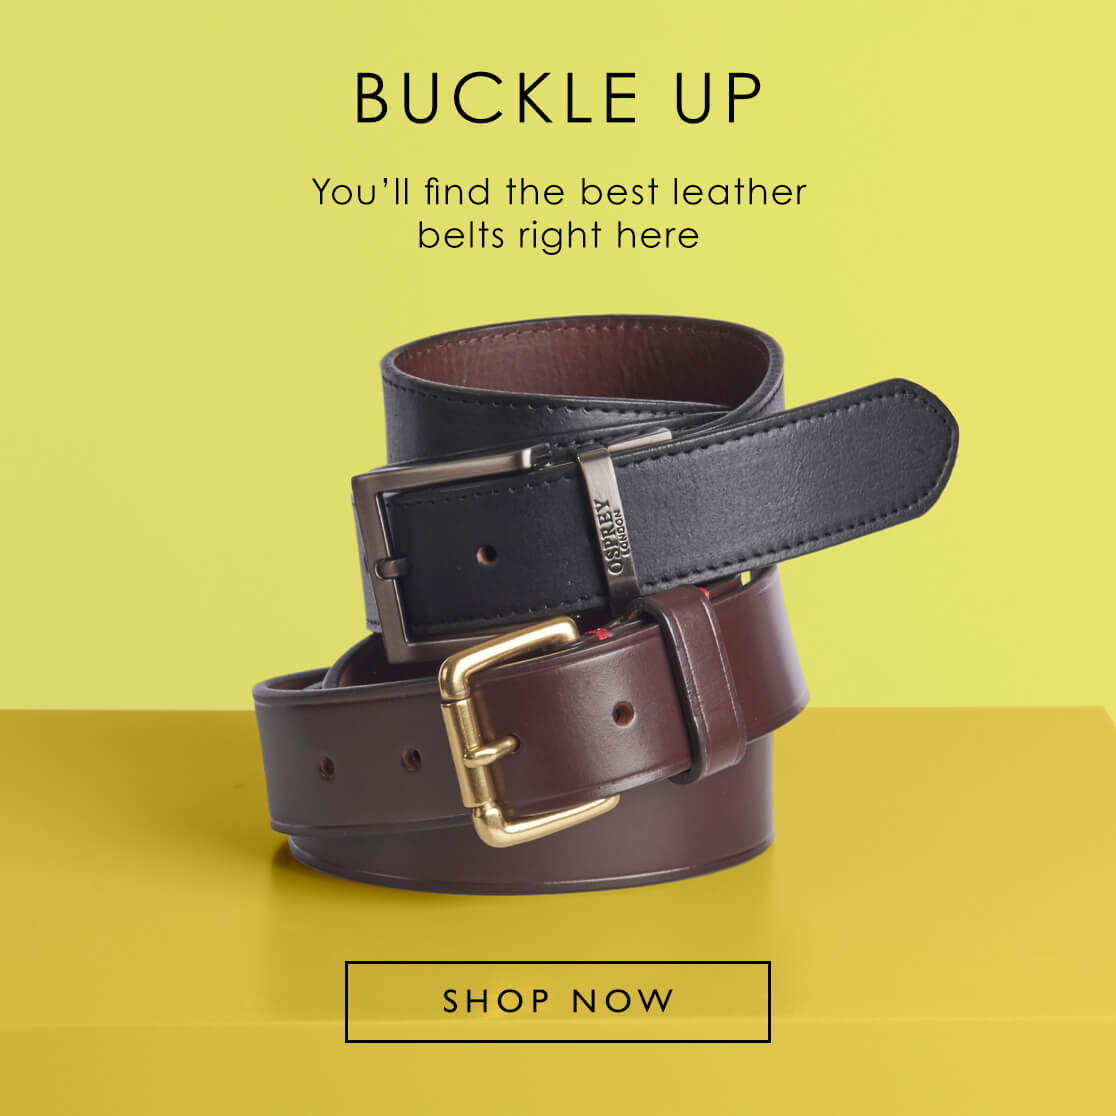 You'll find the best leather belts right here